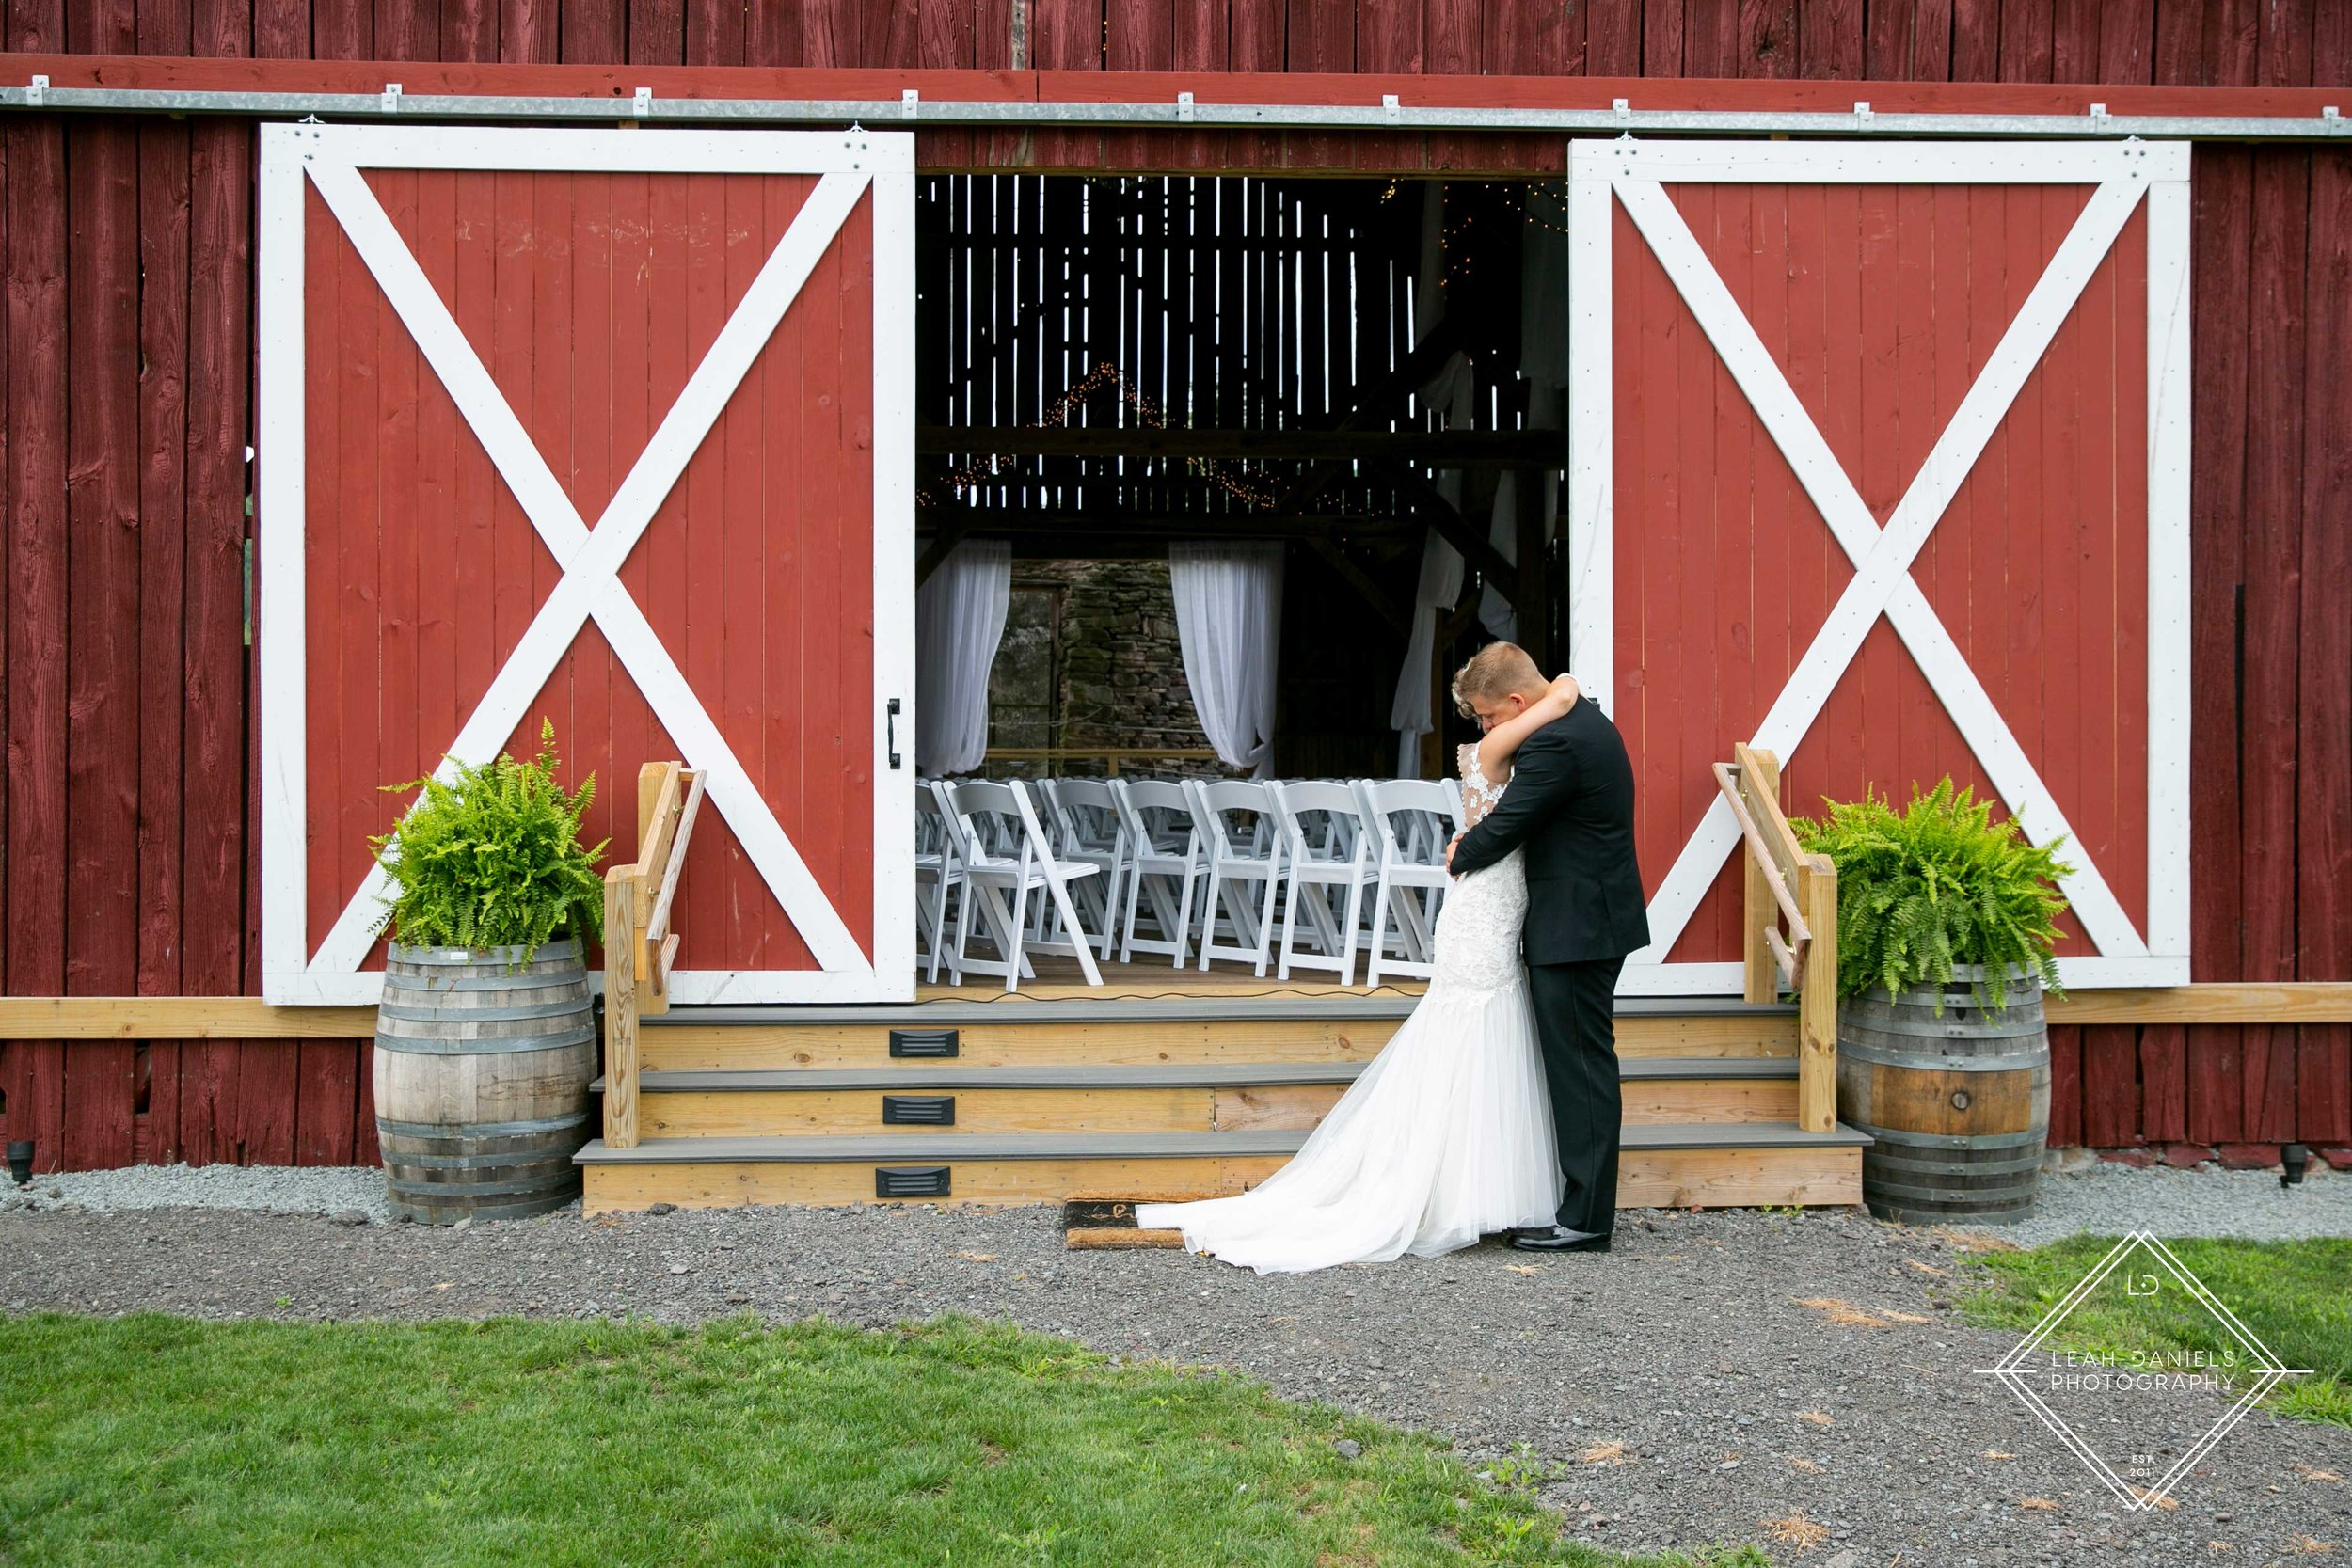 Kelli + taylor Barn at Glistening Pond First Look Leah Daniels Photography